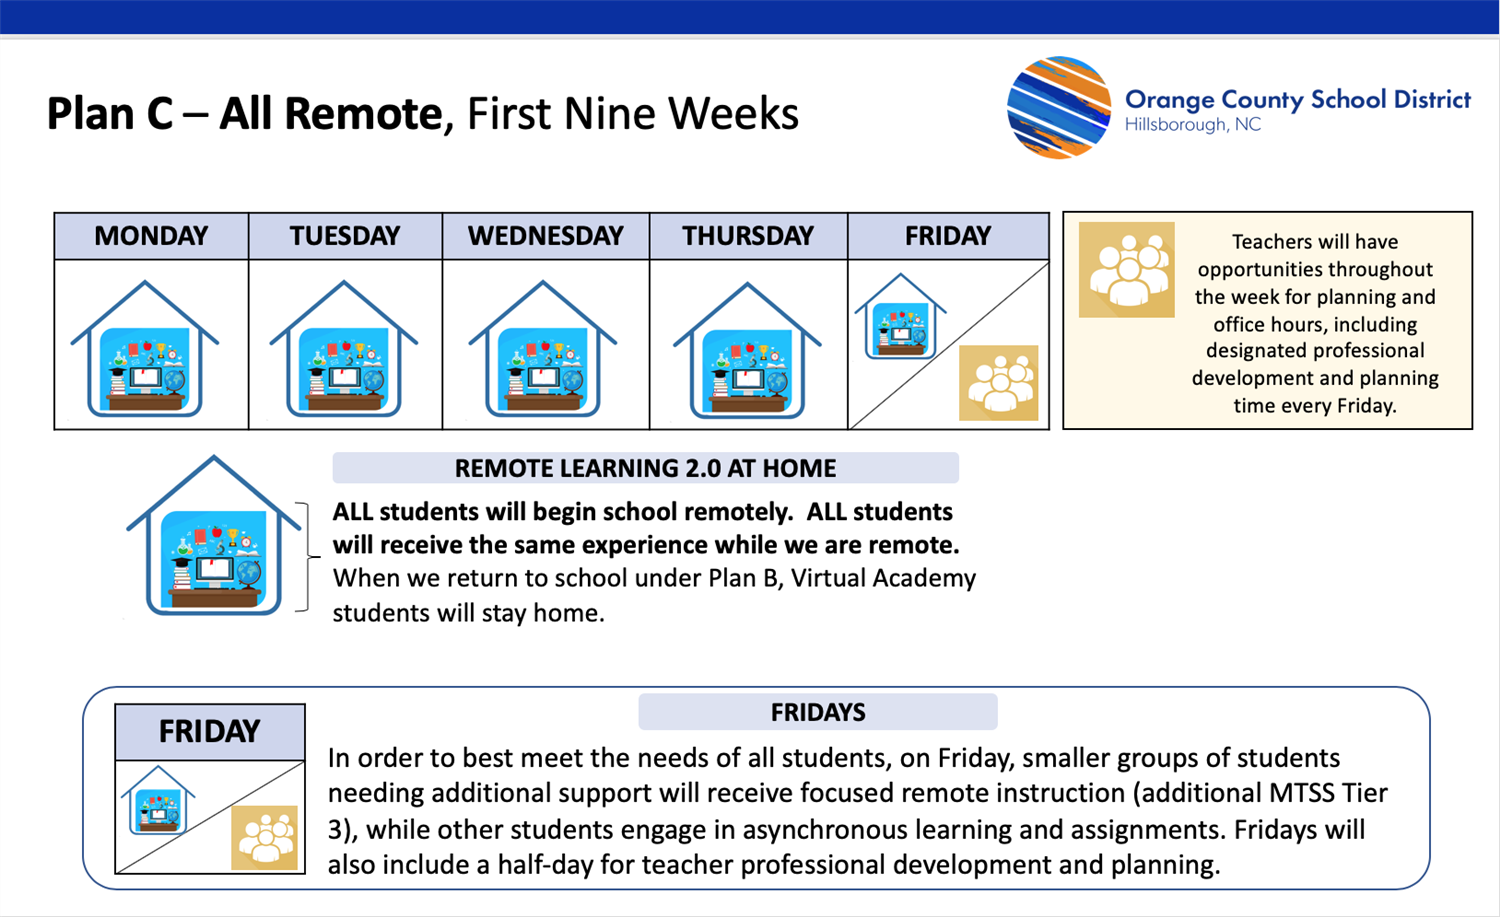 board plan to extend remote learning for first 9 weeks